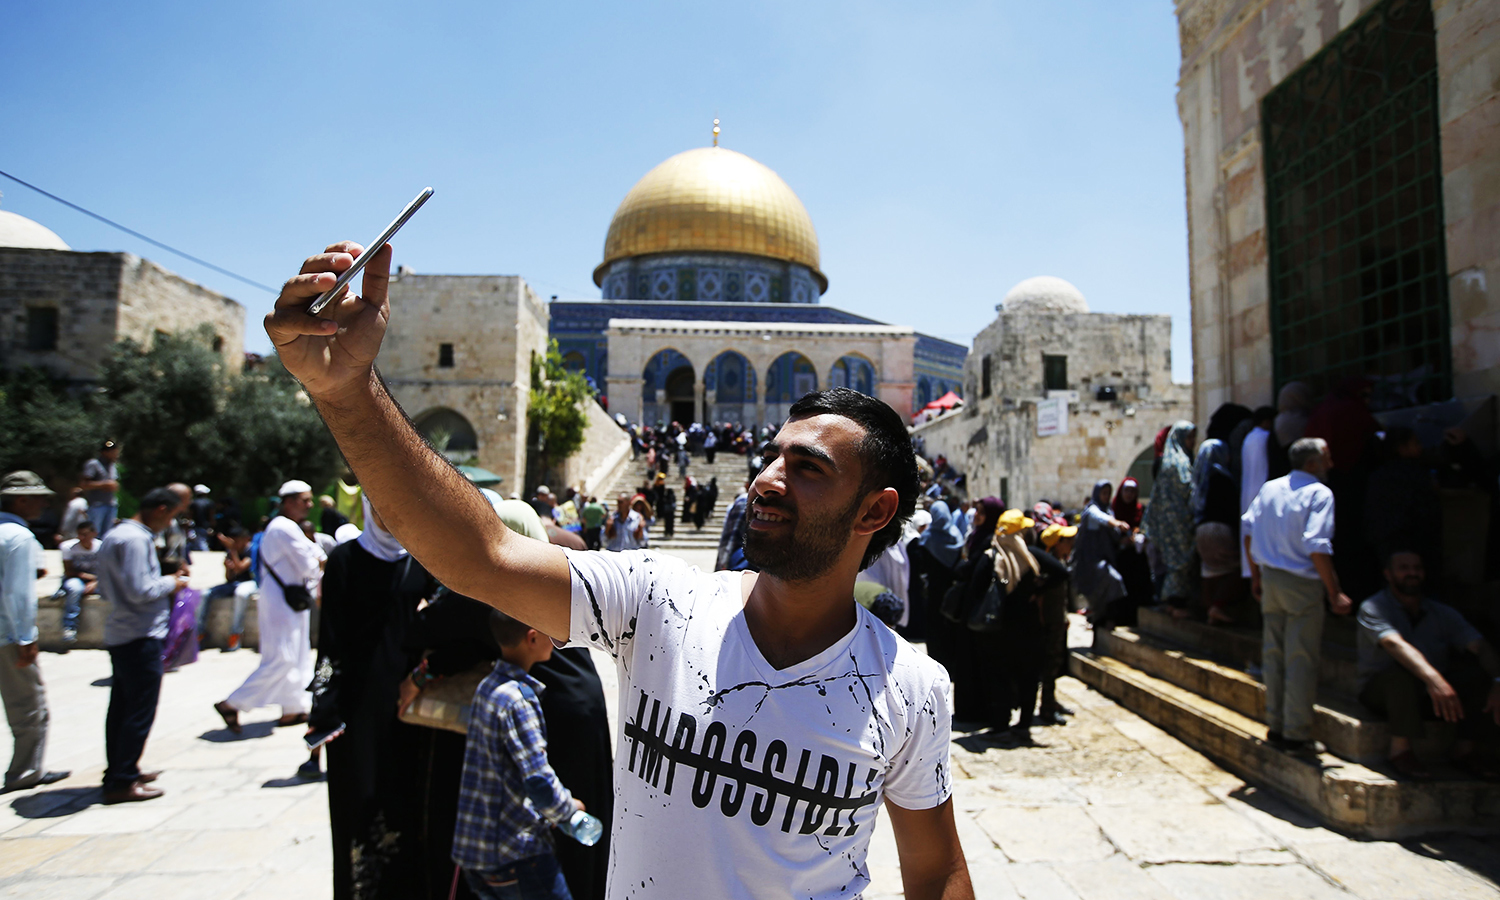 A Palestinian Muslim worshipper takes a selfie near the Dome of the Rock mosque at the Al Aqsa mosque compound in Jerusalem's old city on June 17, 2016 during Friday prayers. ─ AFP